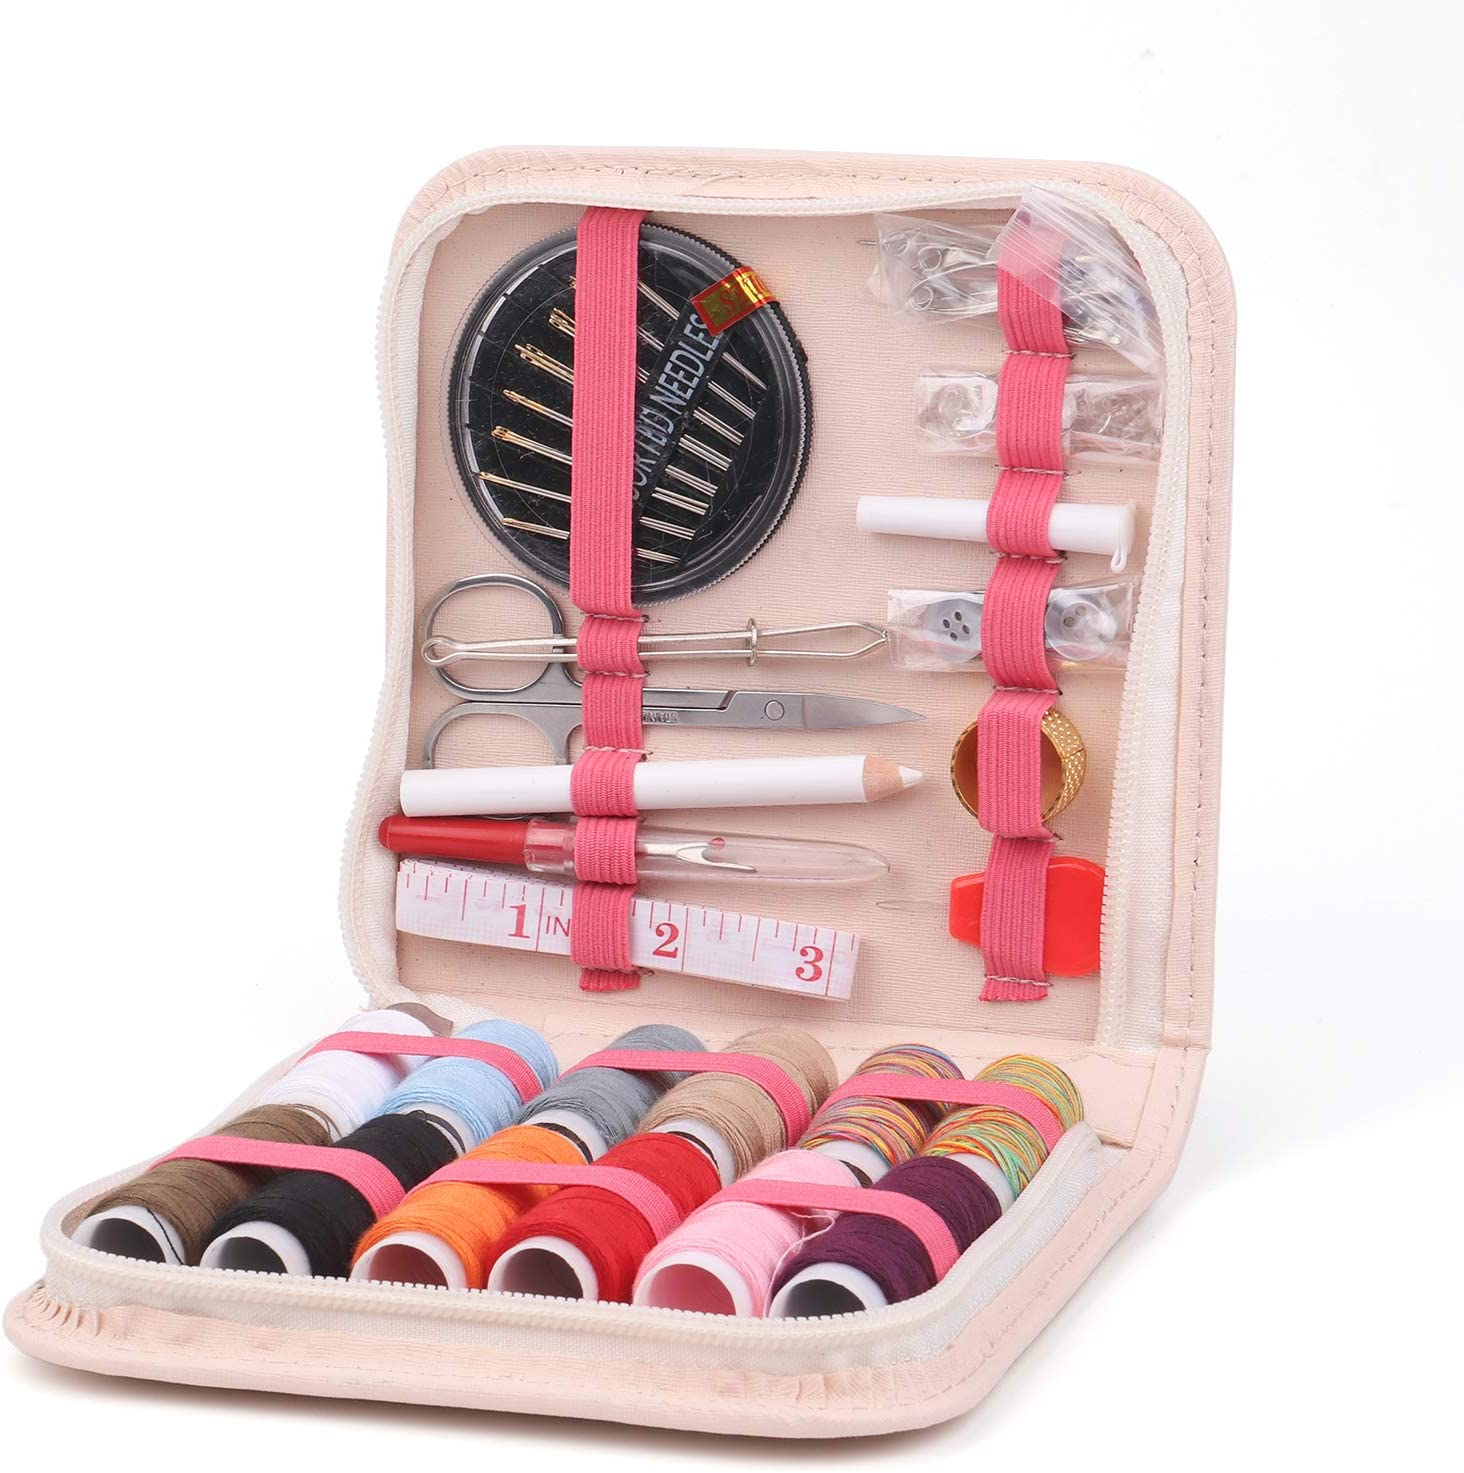 Indefinitely Mini Travel Sewing Kits for Adults Sewin Beginners DIY Women Max 76% OFF